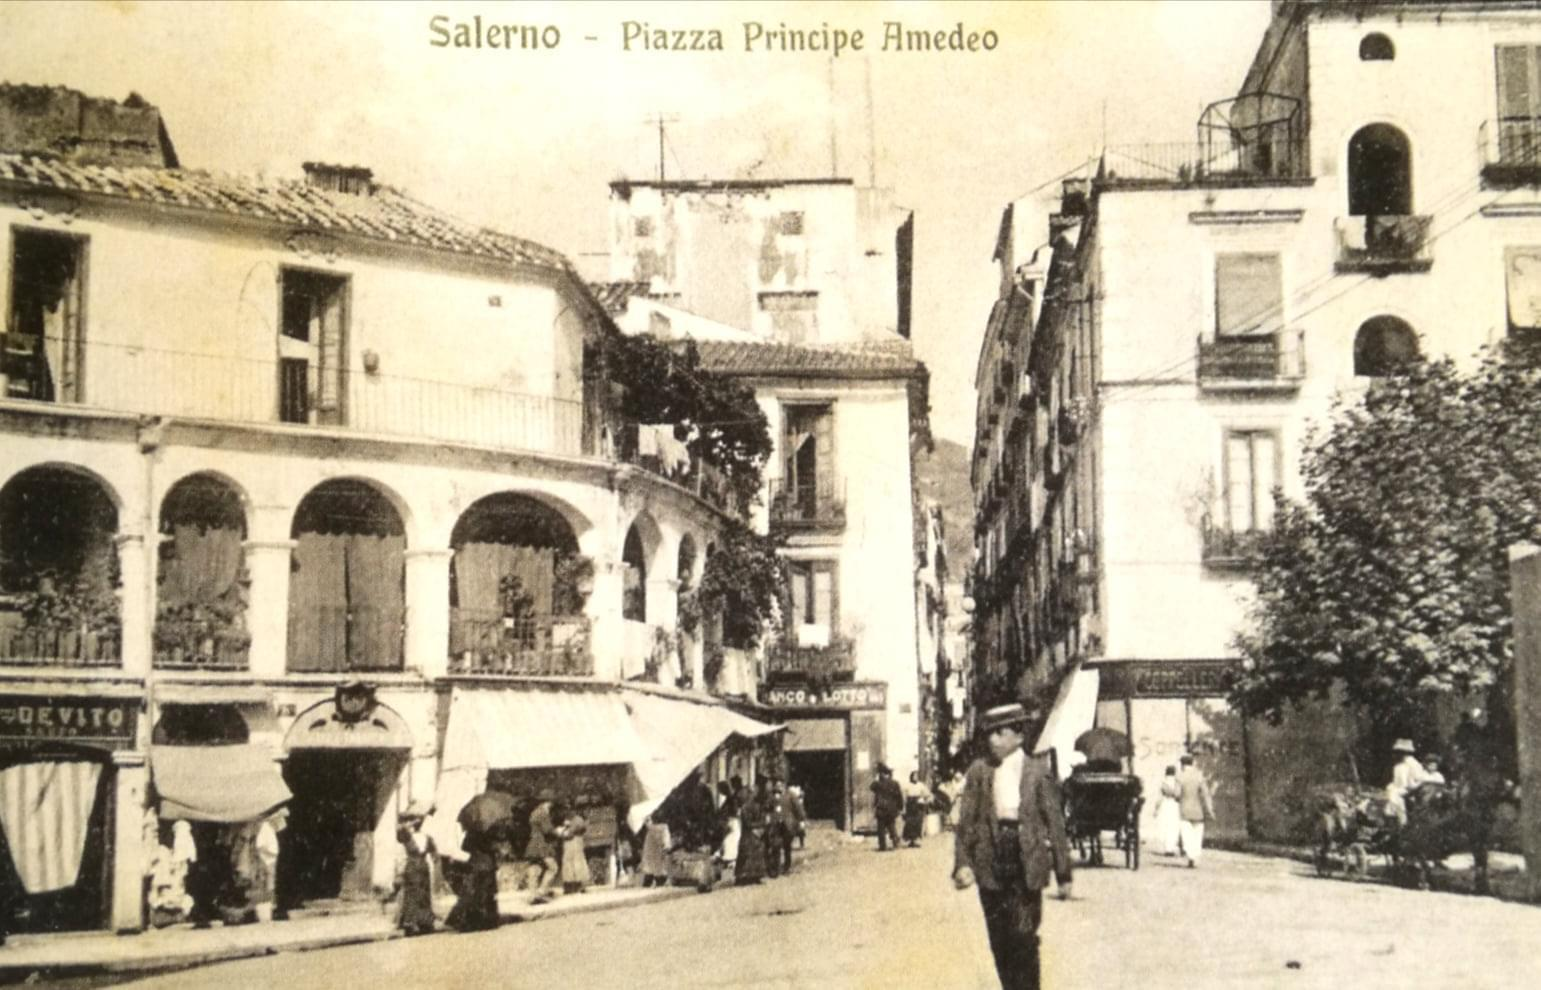 Salerno, 1916 - Piazza Principe Amedeo